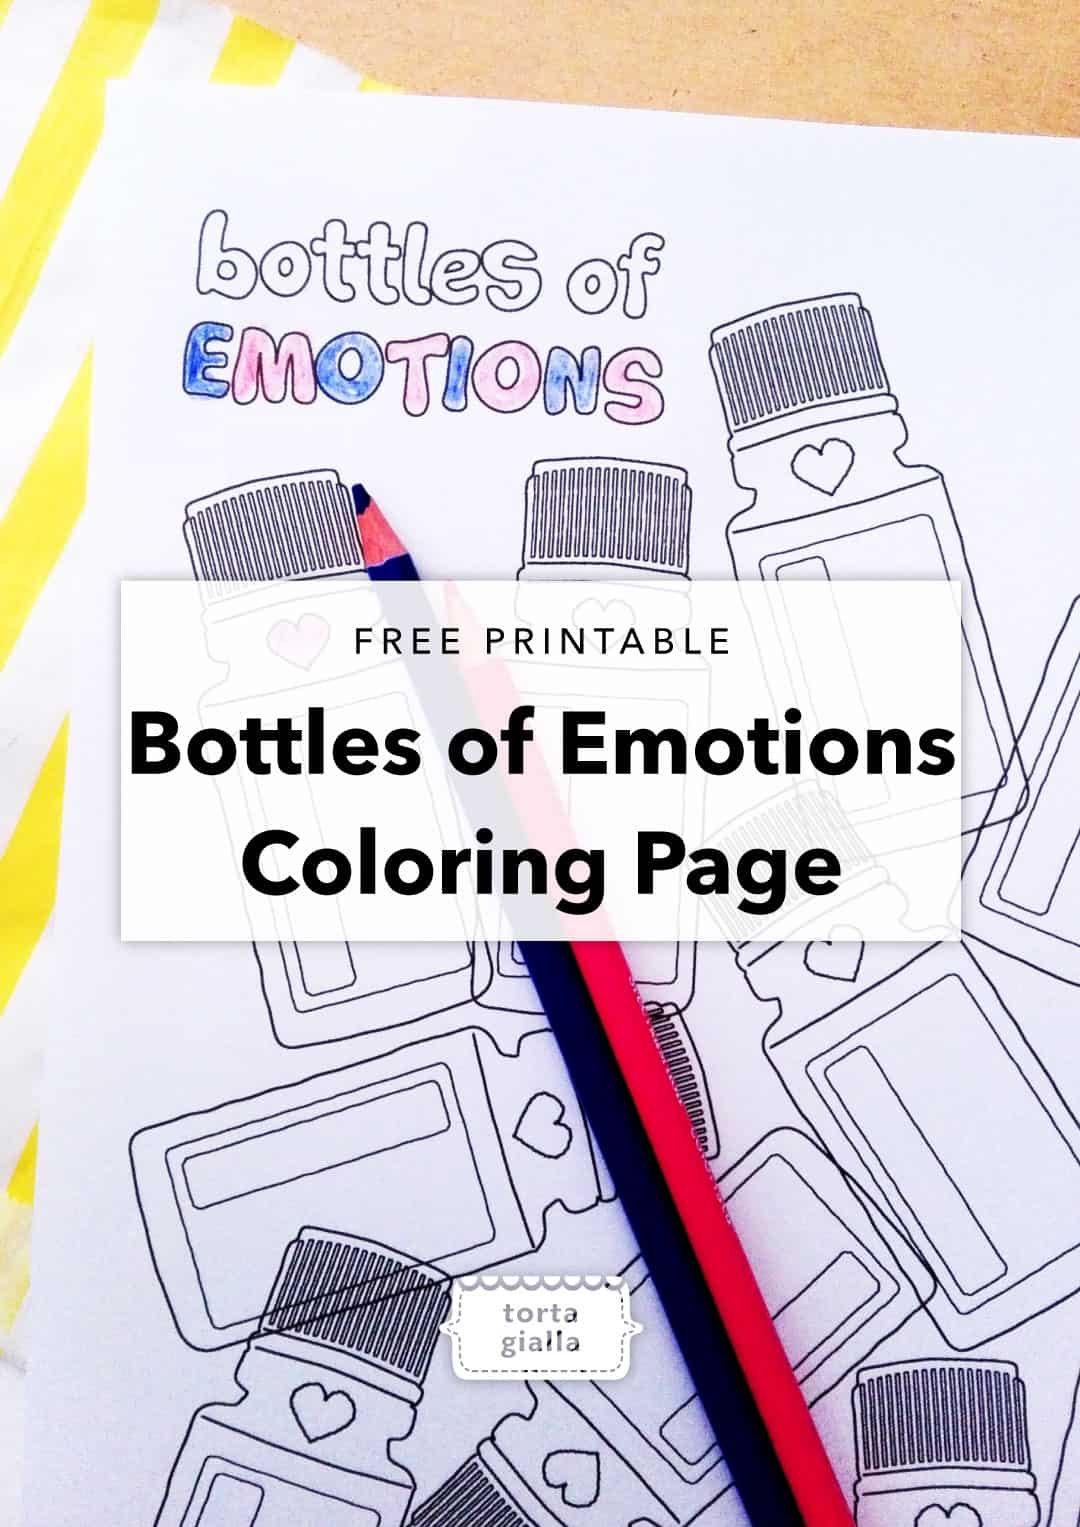 Bottles of Emotions Coloring Page Printable tortagialla